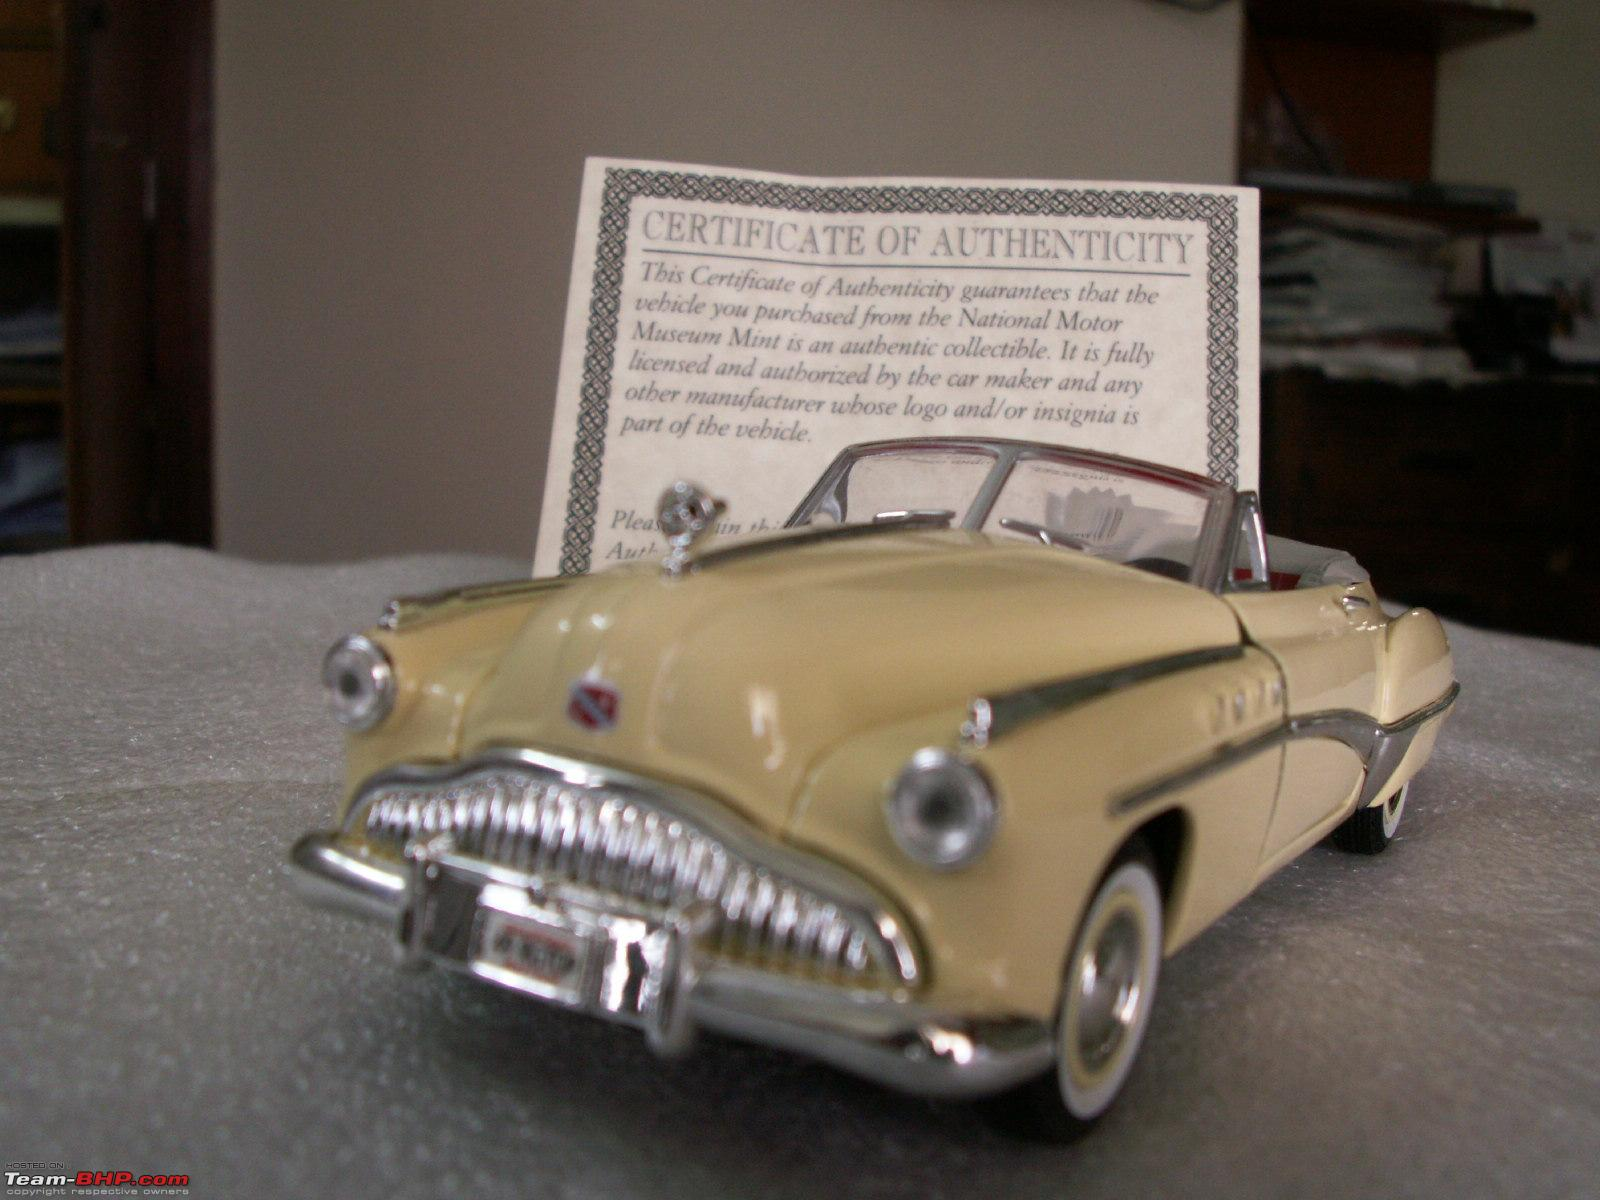 Here's a 1949 Buick Roadmaster